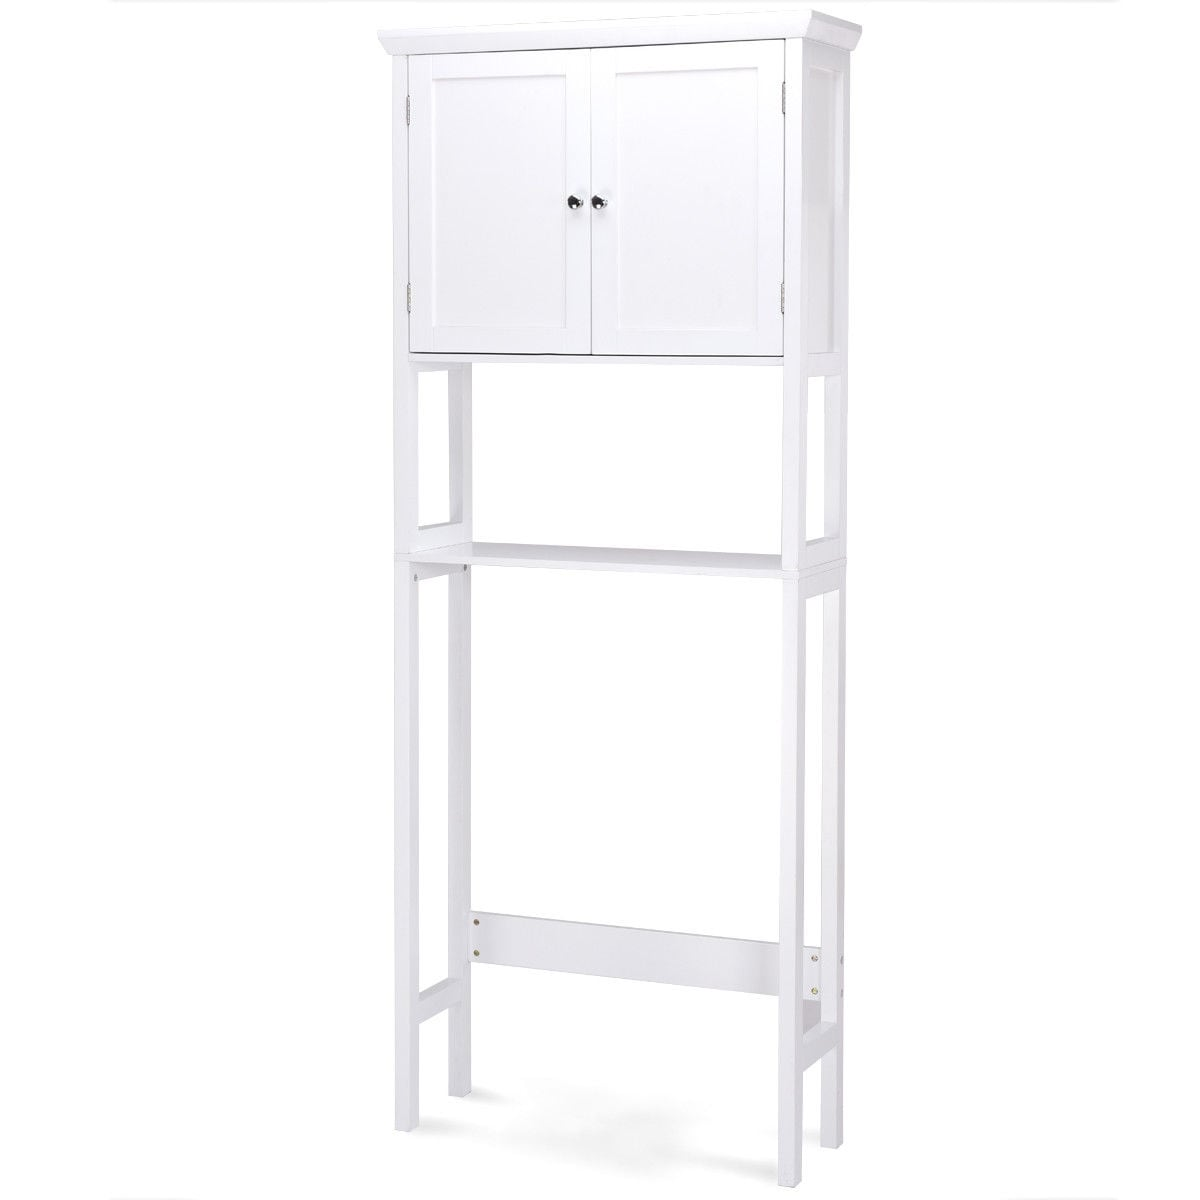 Shop Costway Toilet Storage Space Saver Towel Rack Shelf Cabinet ...